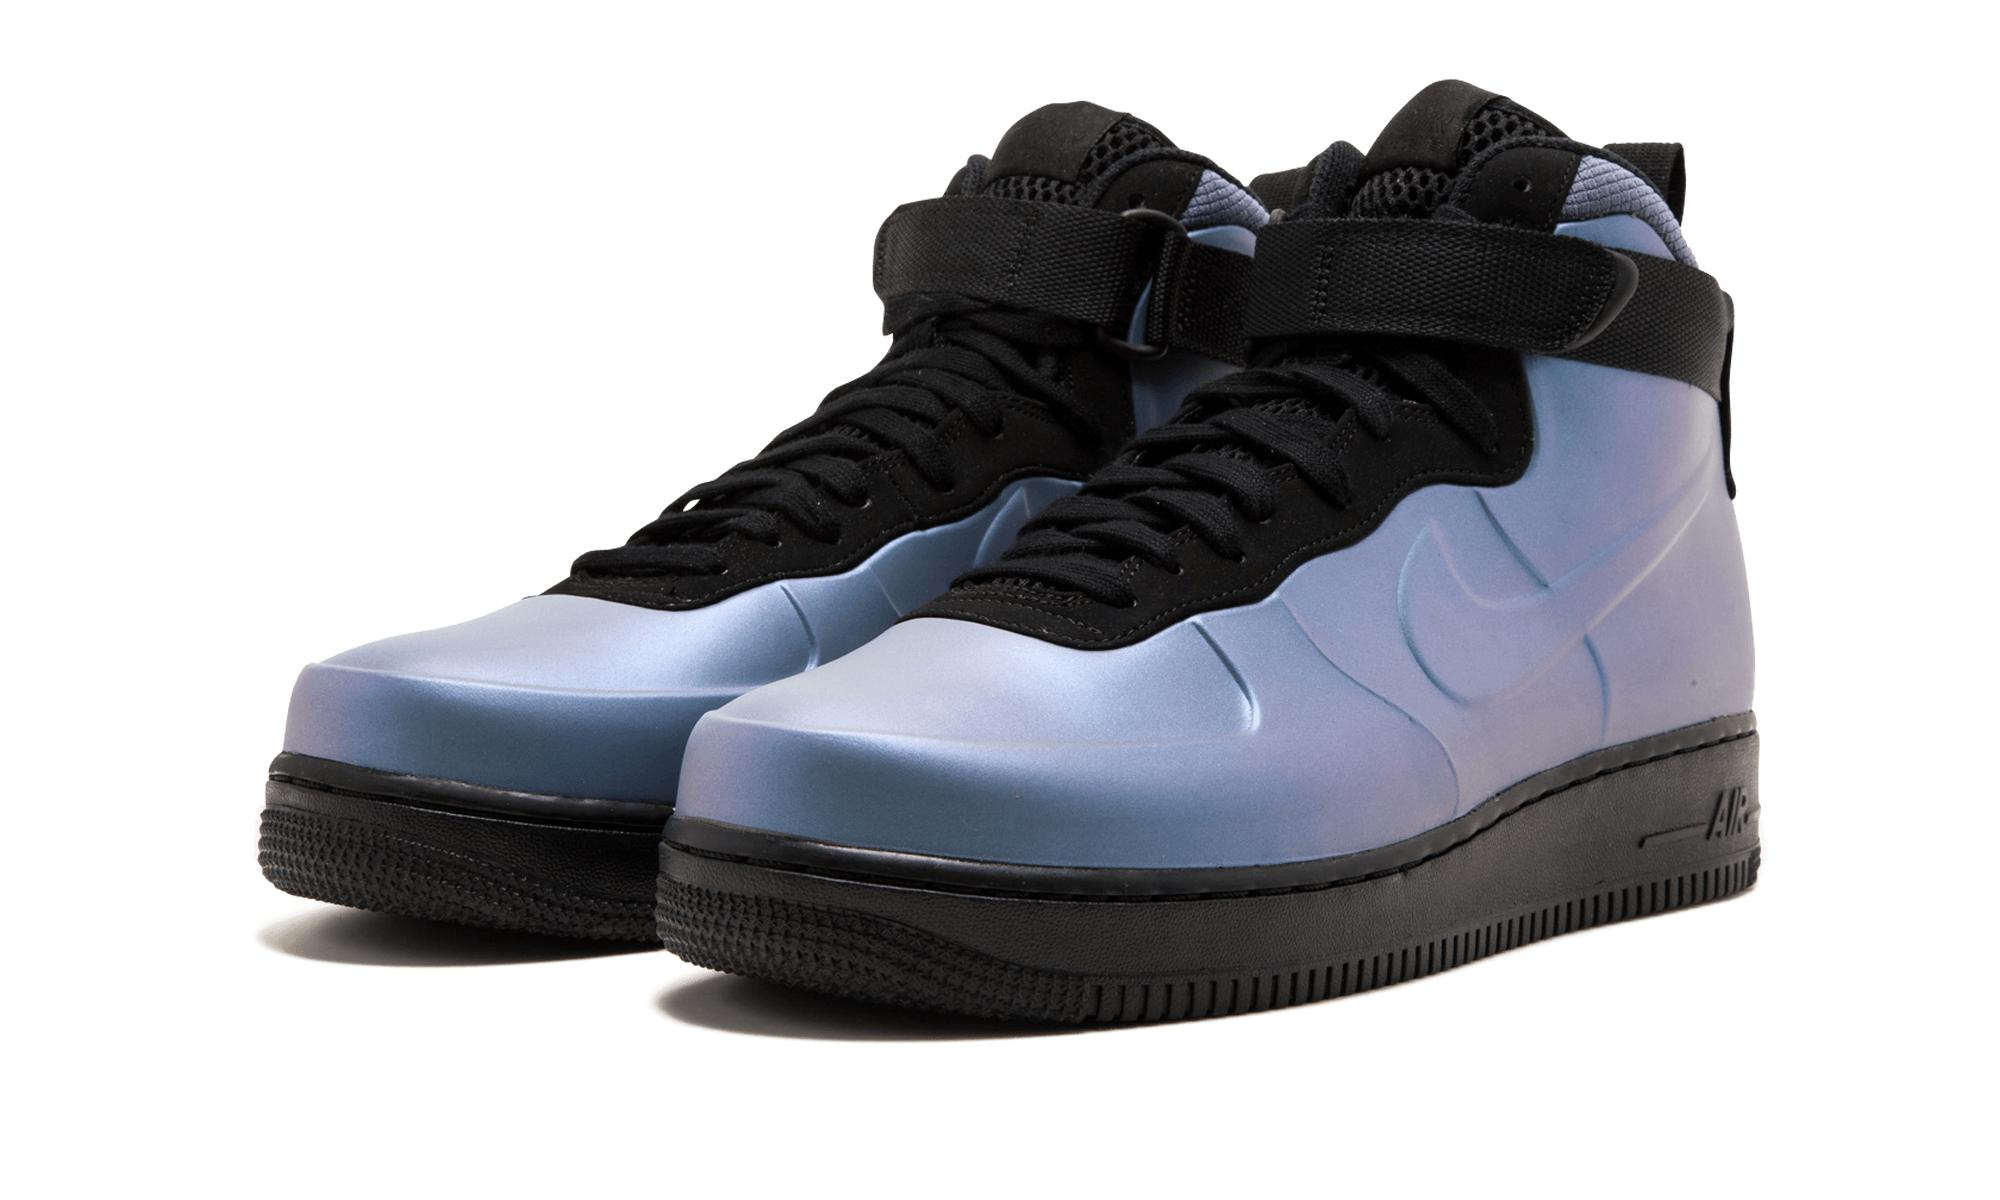 5fc83fee222ac Nike - Multicolor Air Force 1 Foamposite Cup for Men - Lyst. View fullscreen